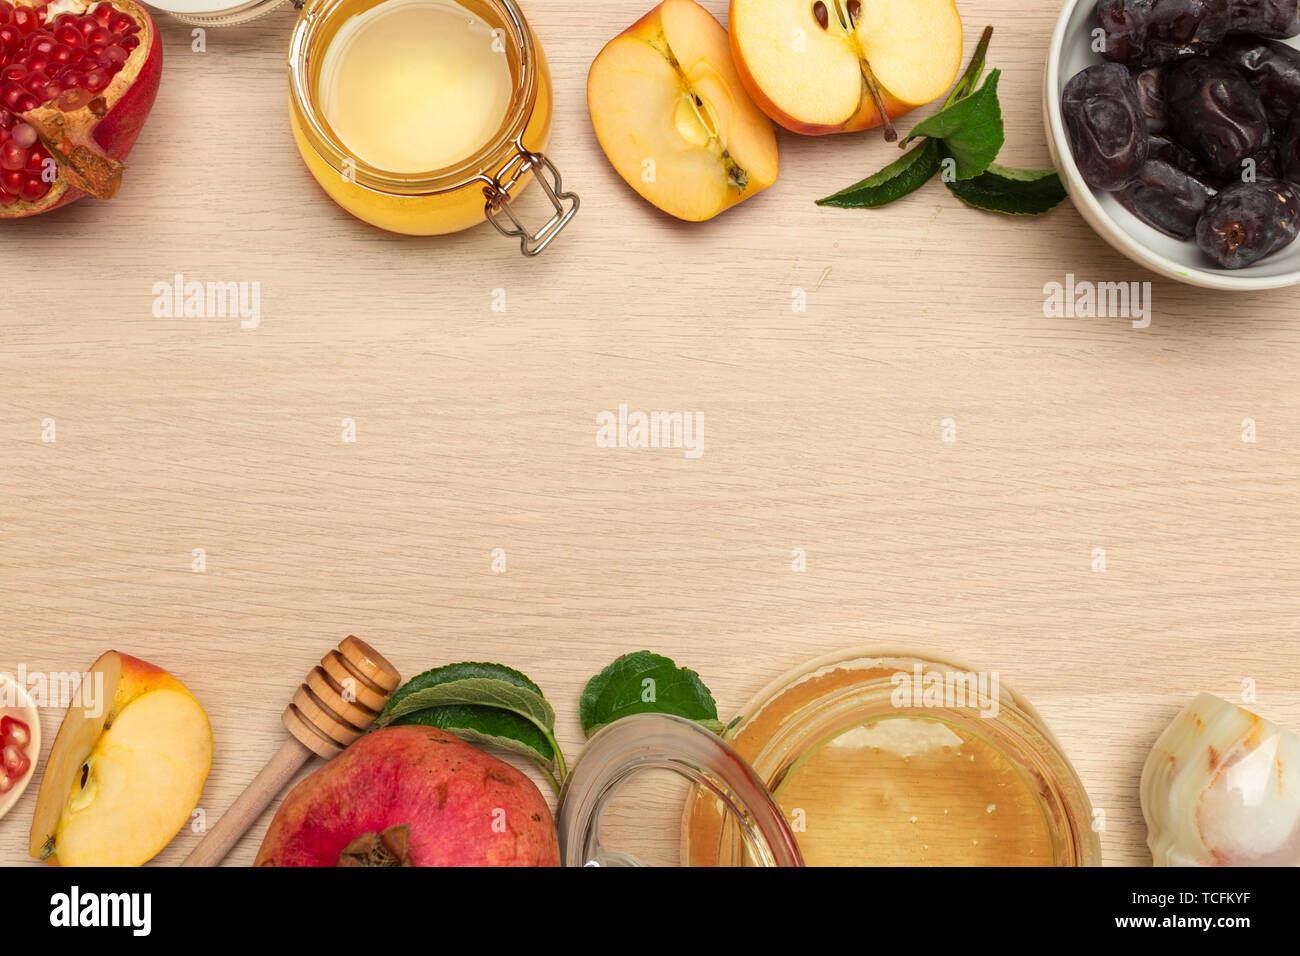 Honey, pomegranate, apple and dates on wooden board. Jewish New Year Rosh hashana celebration - Stock Image